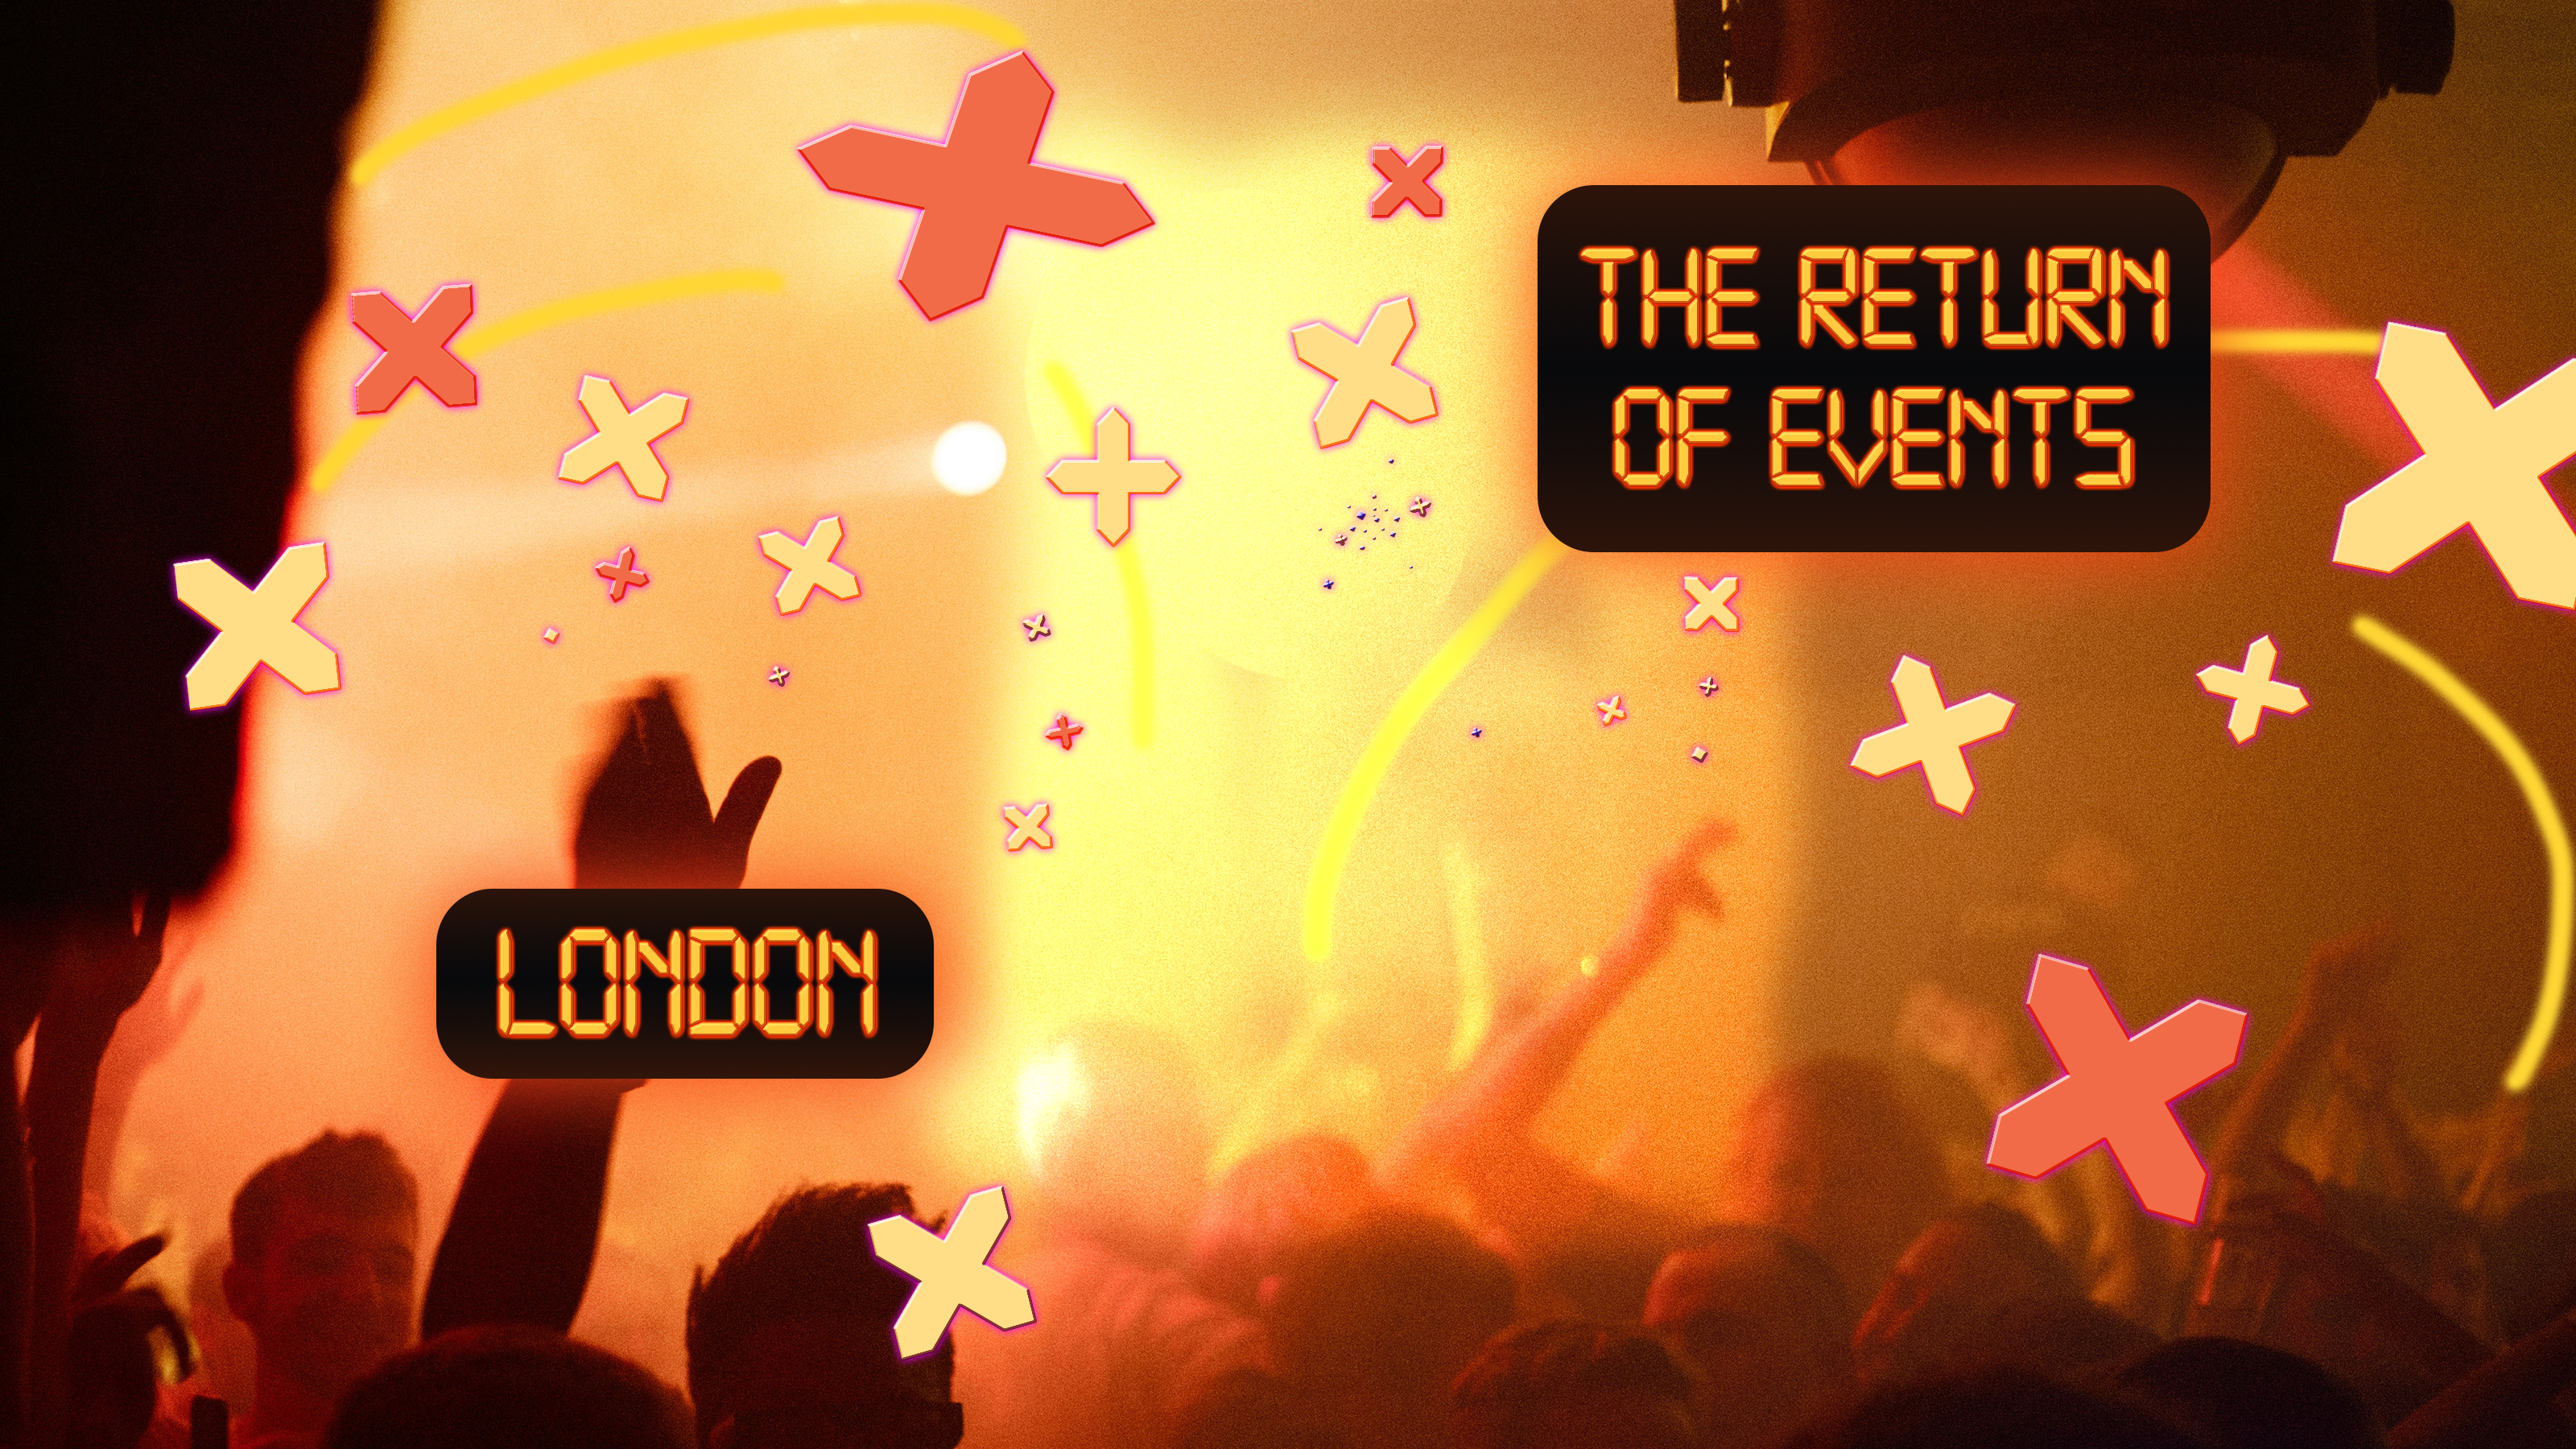 The Return of Events: London